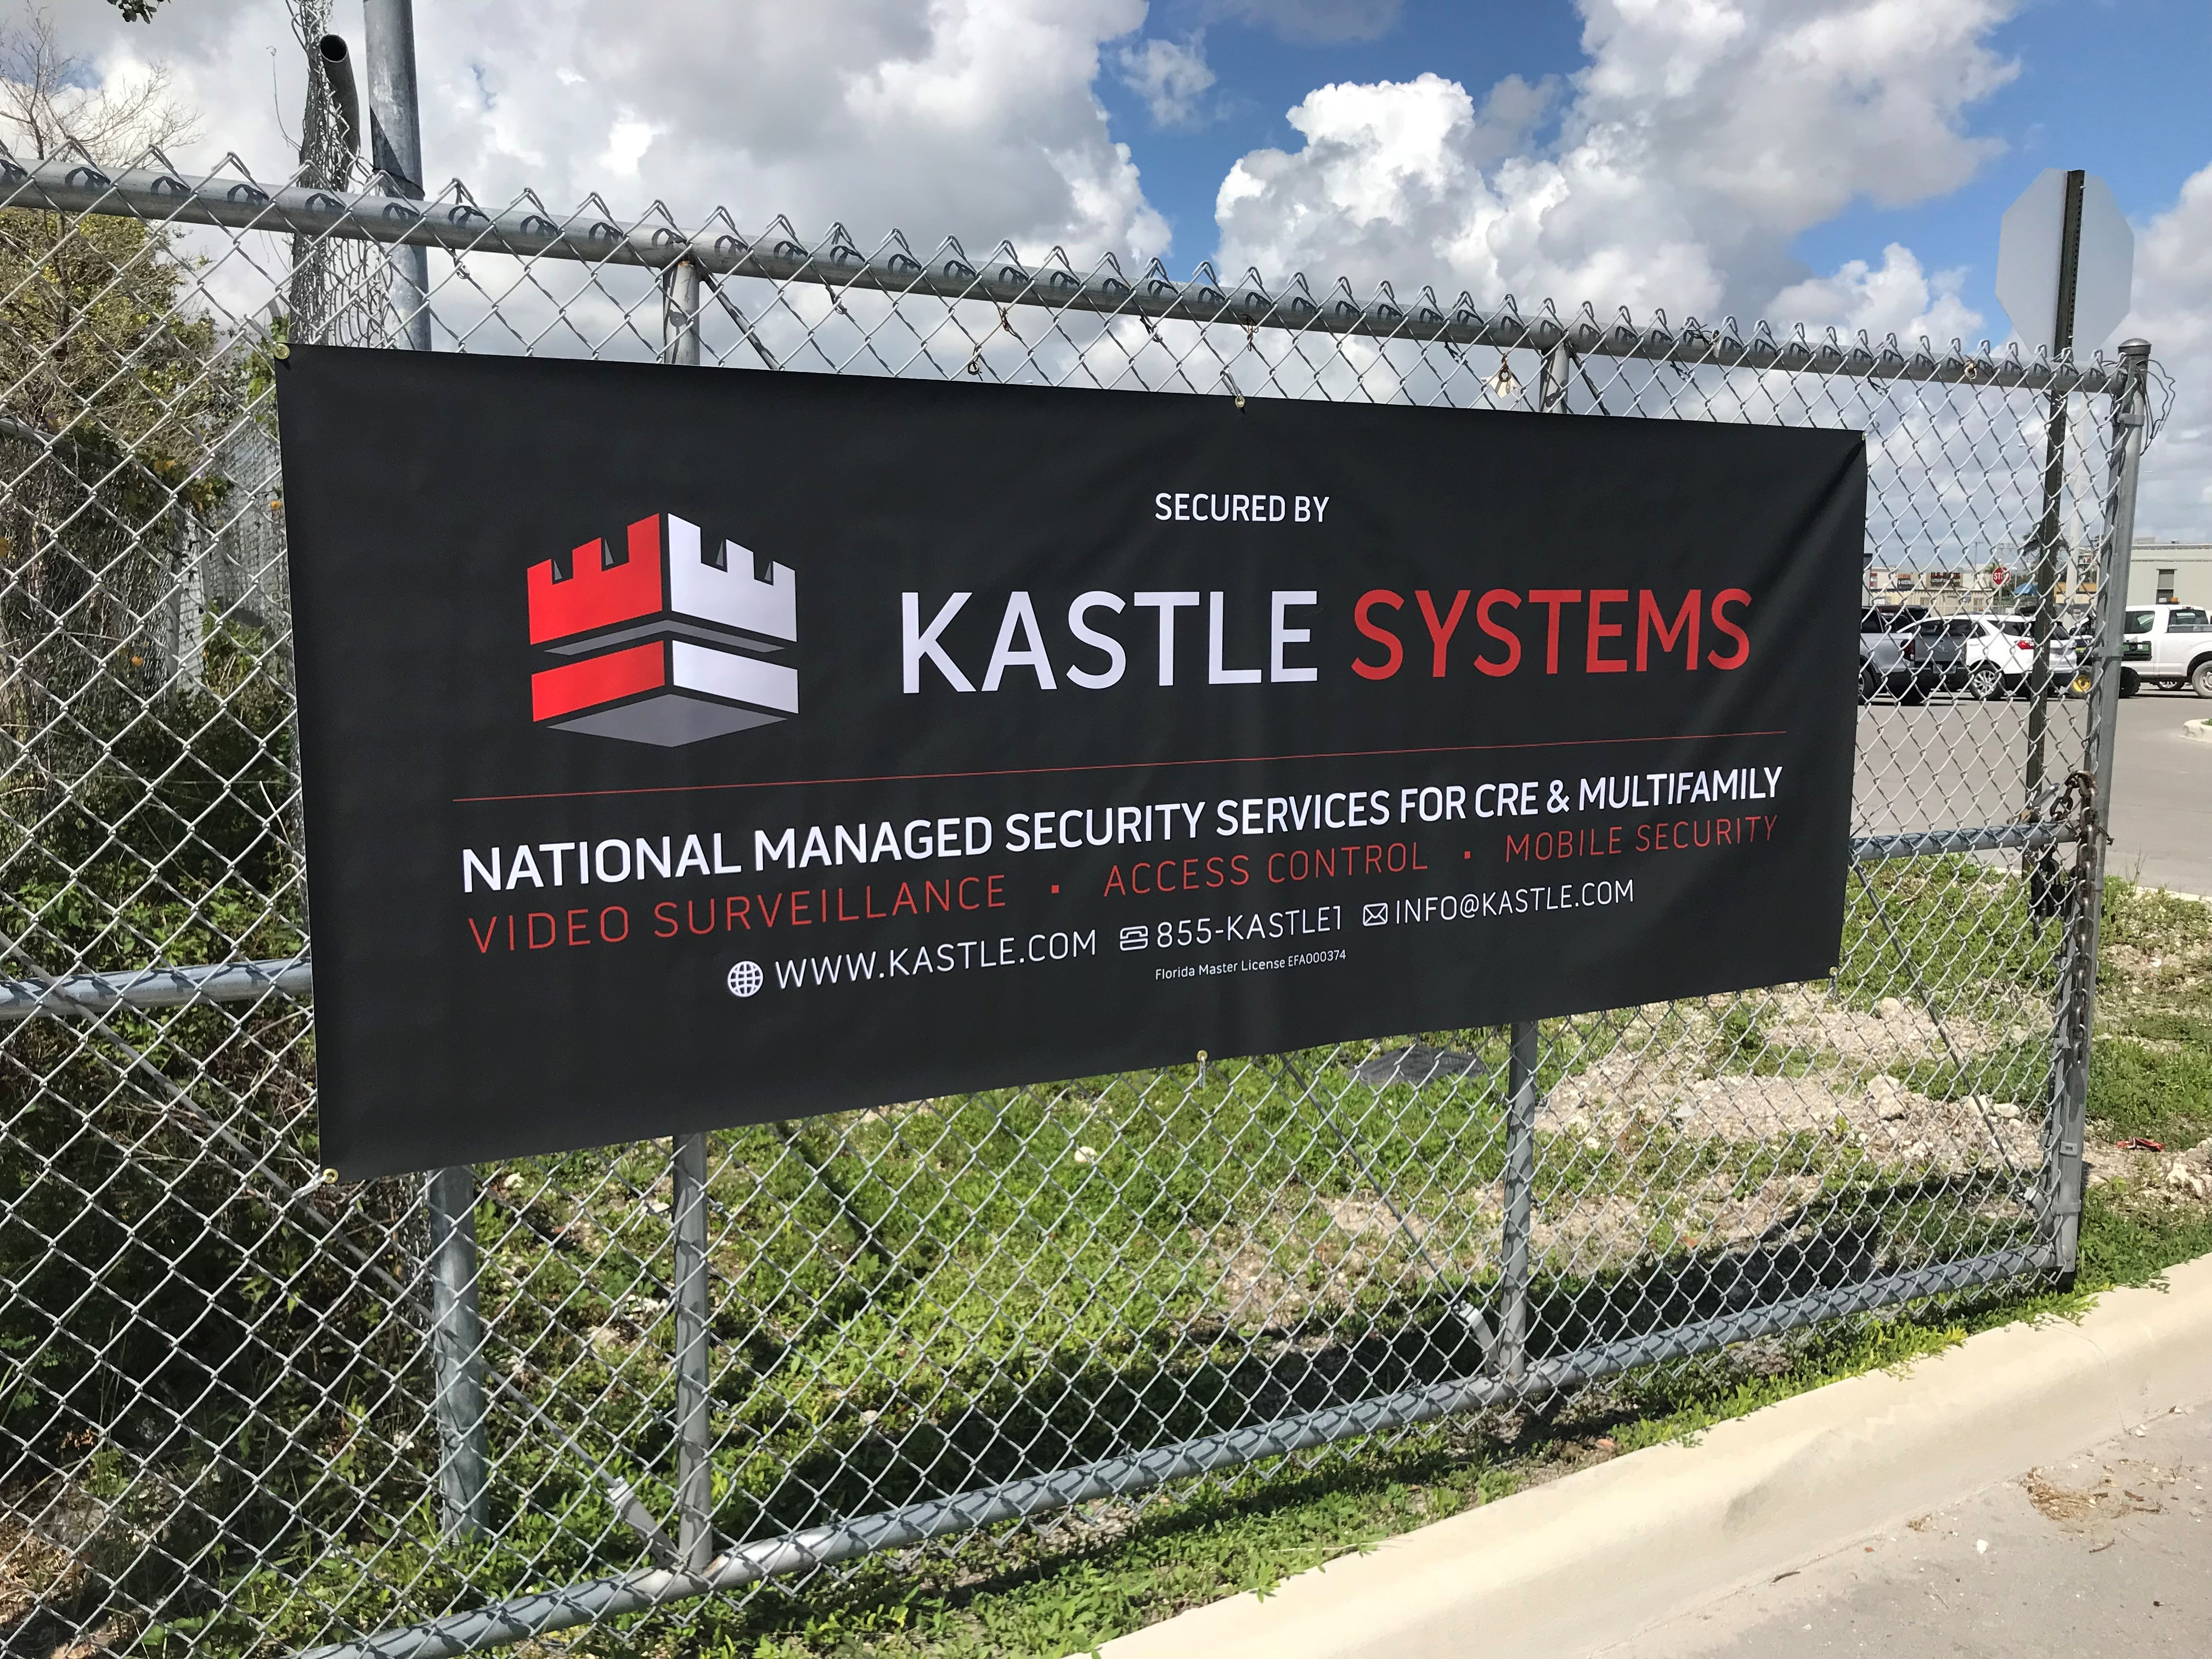 Kastle Systems image 4